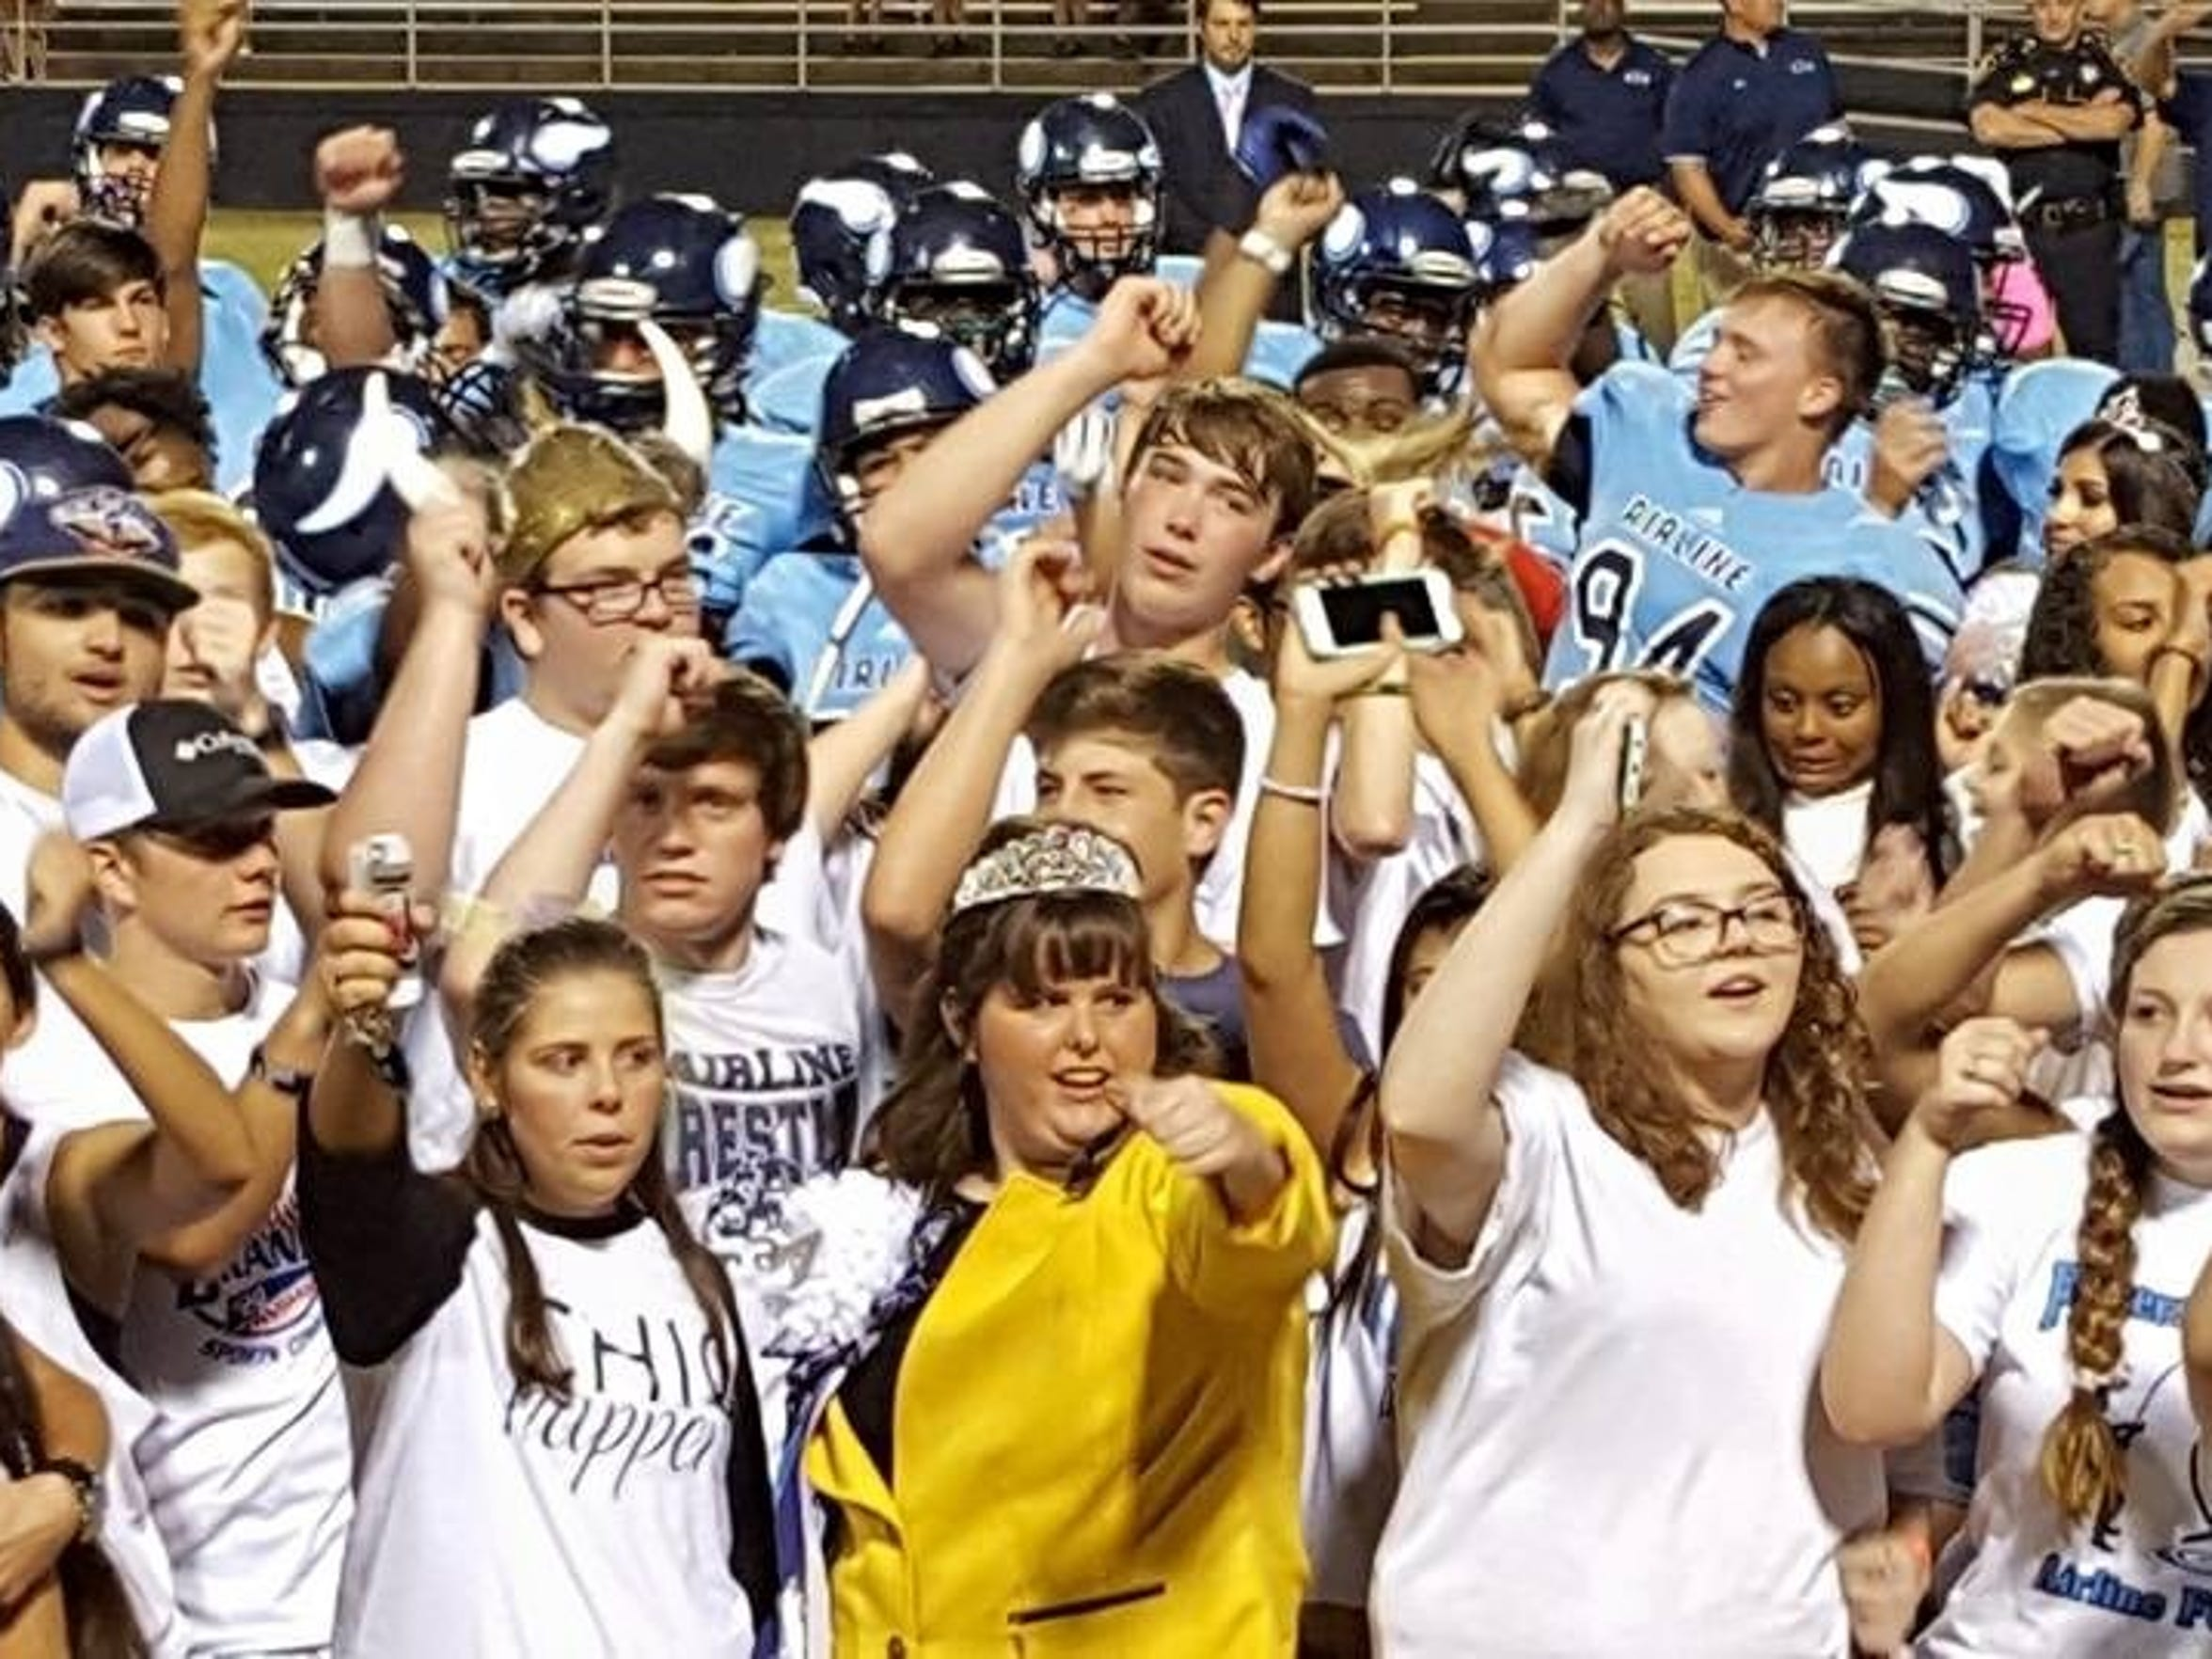 The Airline student cheering section is one of the